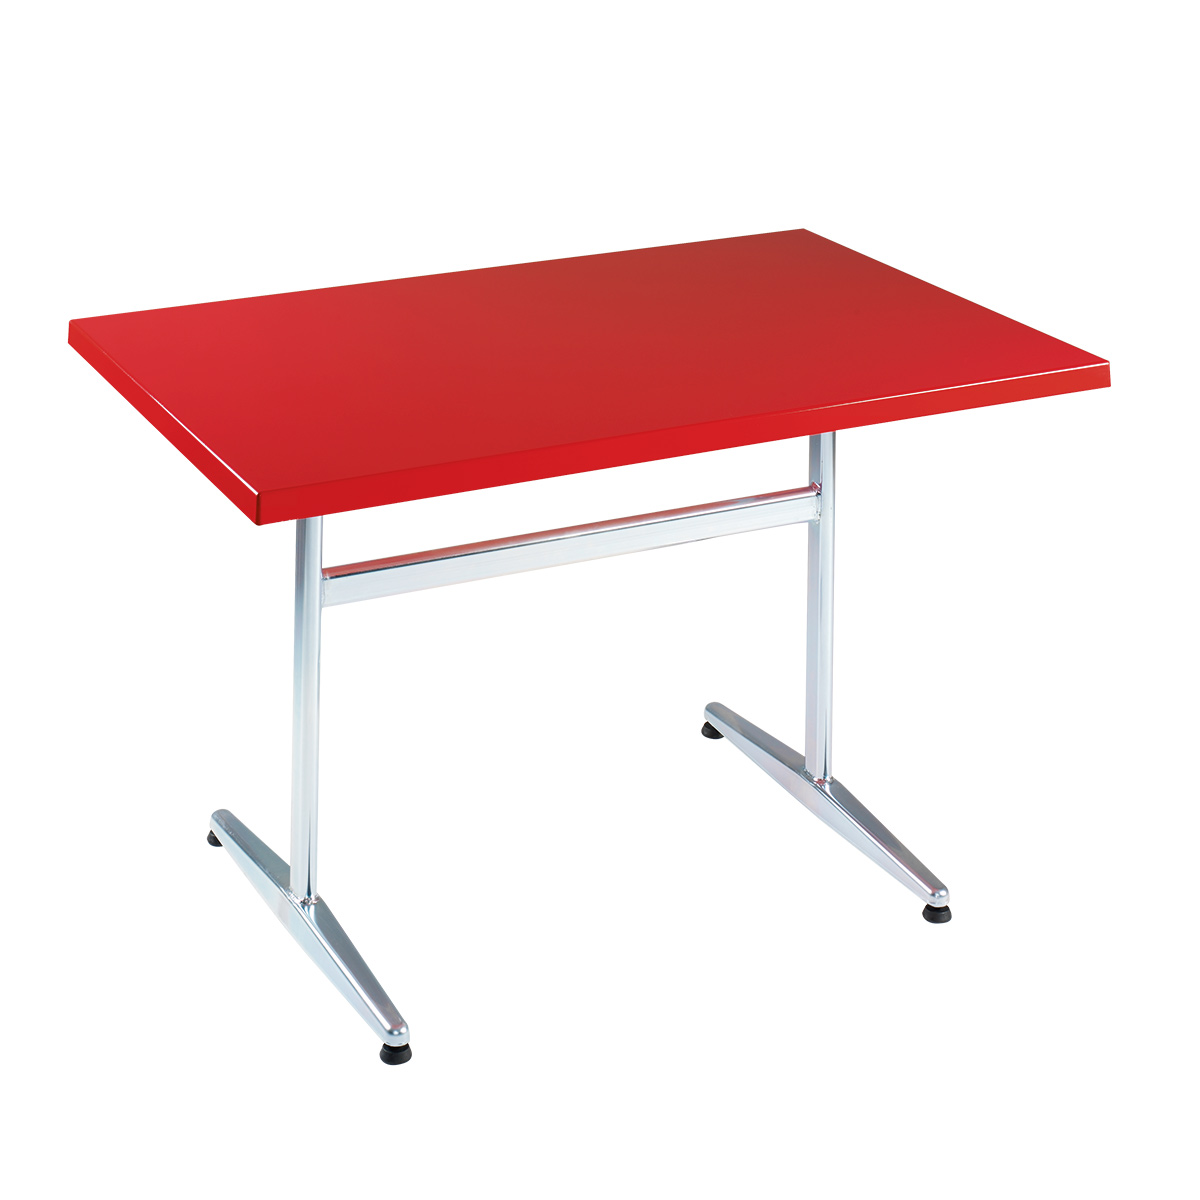 Table PRV rouge trafic, brillante, Piétement électrozingué en T Basic, 120 x 70 x 3.5 cm, H 73 cm